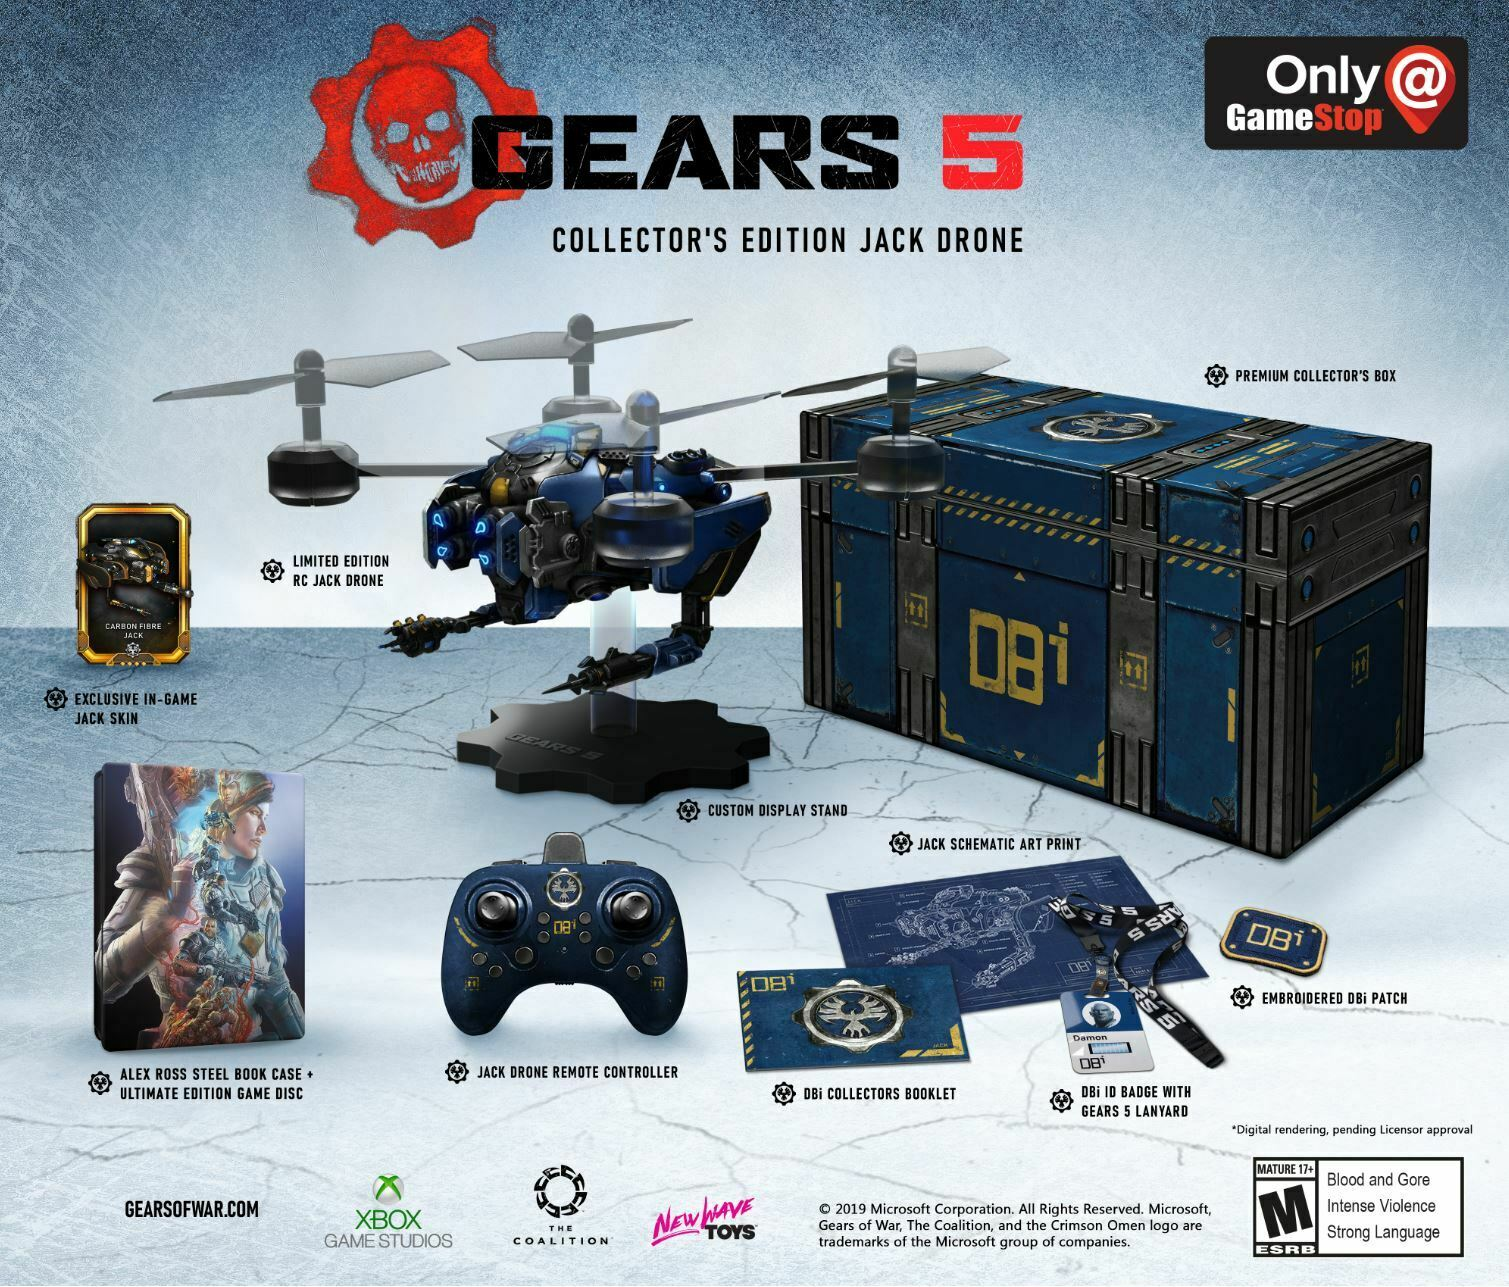 Gears-5-Ultimate-Edition-and-Jack-Drone.jpg